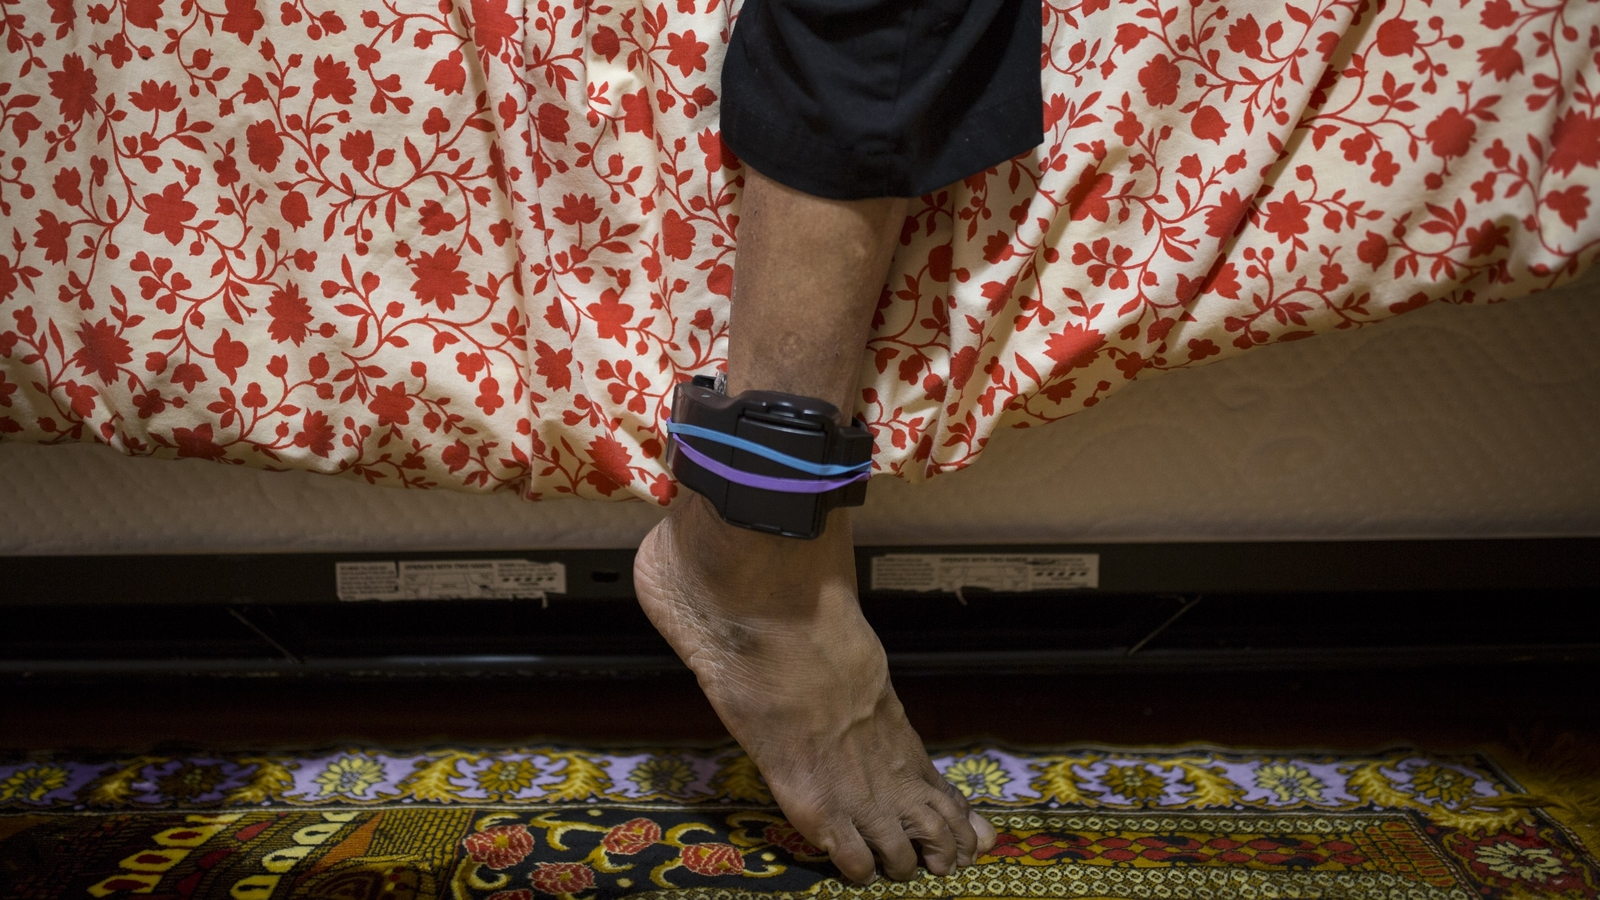 While living in Sanctuary, Sujitmo Sajuti, ankle monitor, Unitarian Universalist Church, Meriden, Connecticut, from the series Living in Sanctuary by Cinthya Briones-Santos